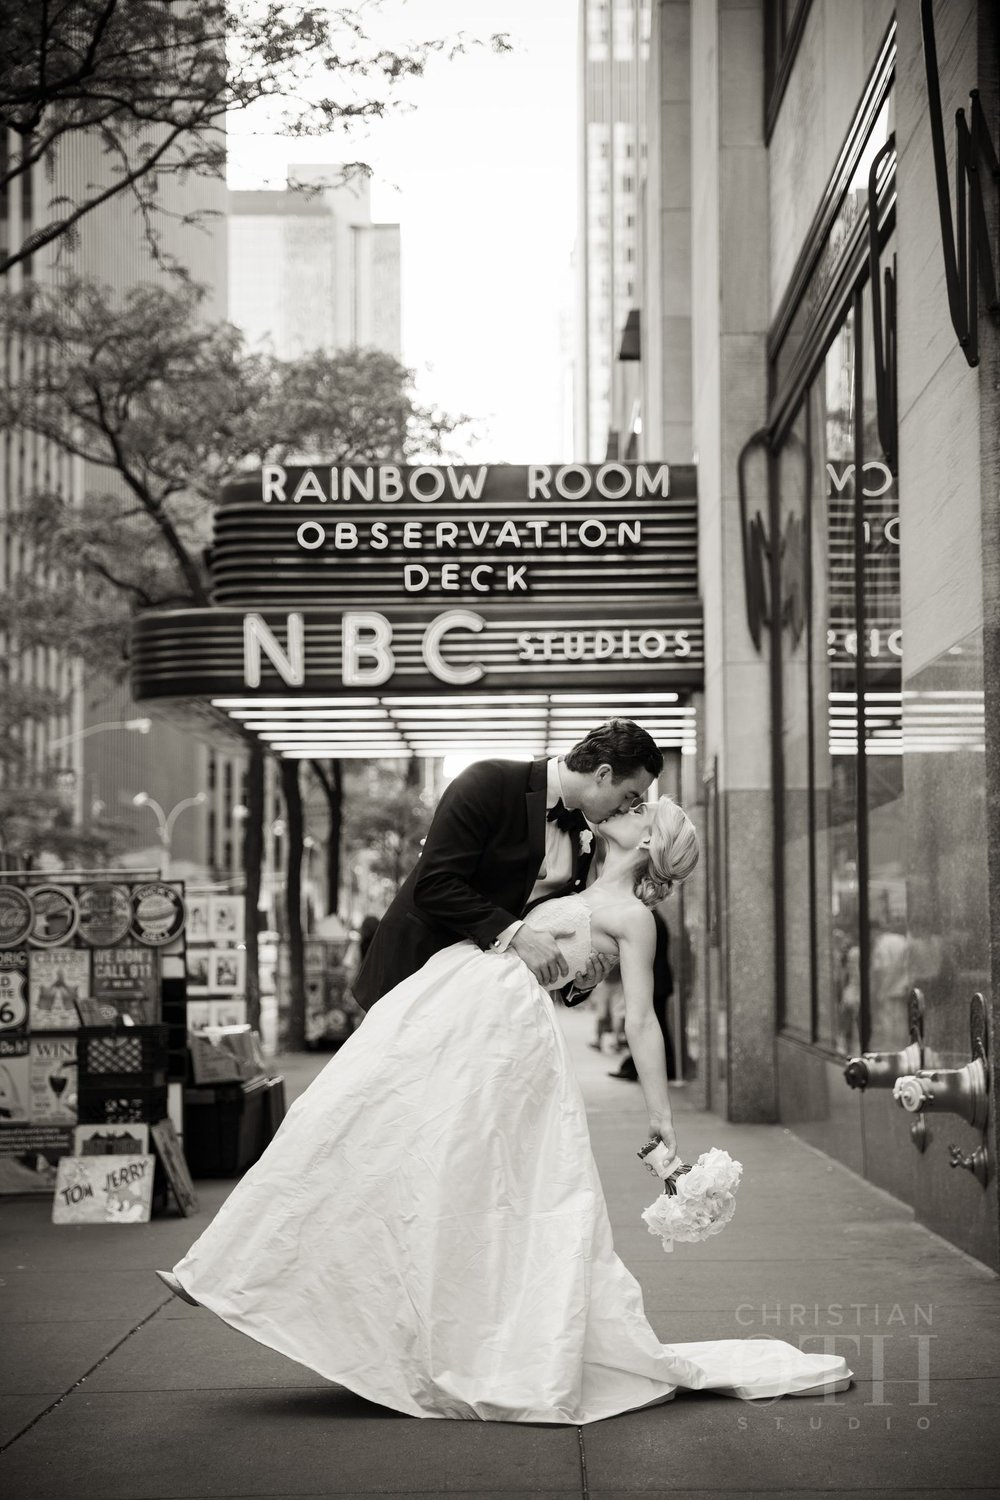 Classic Rainbow Room Wedding. Photo by Christian Oth Studio.